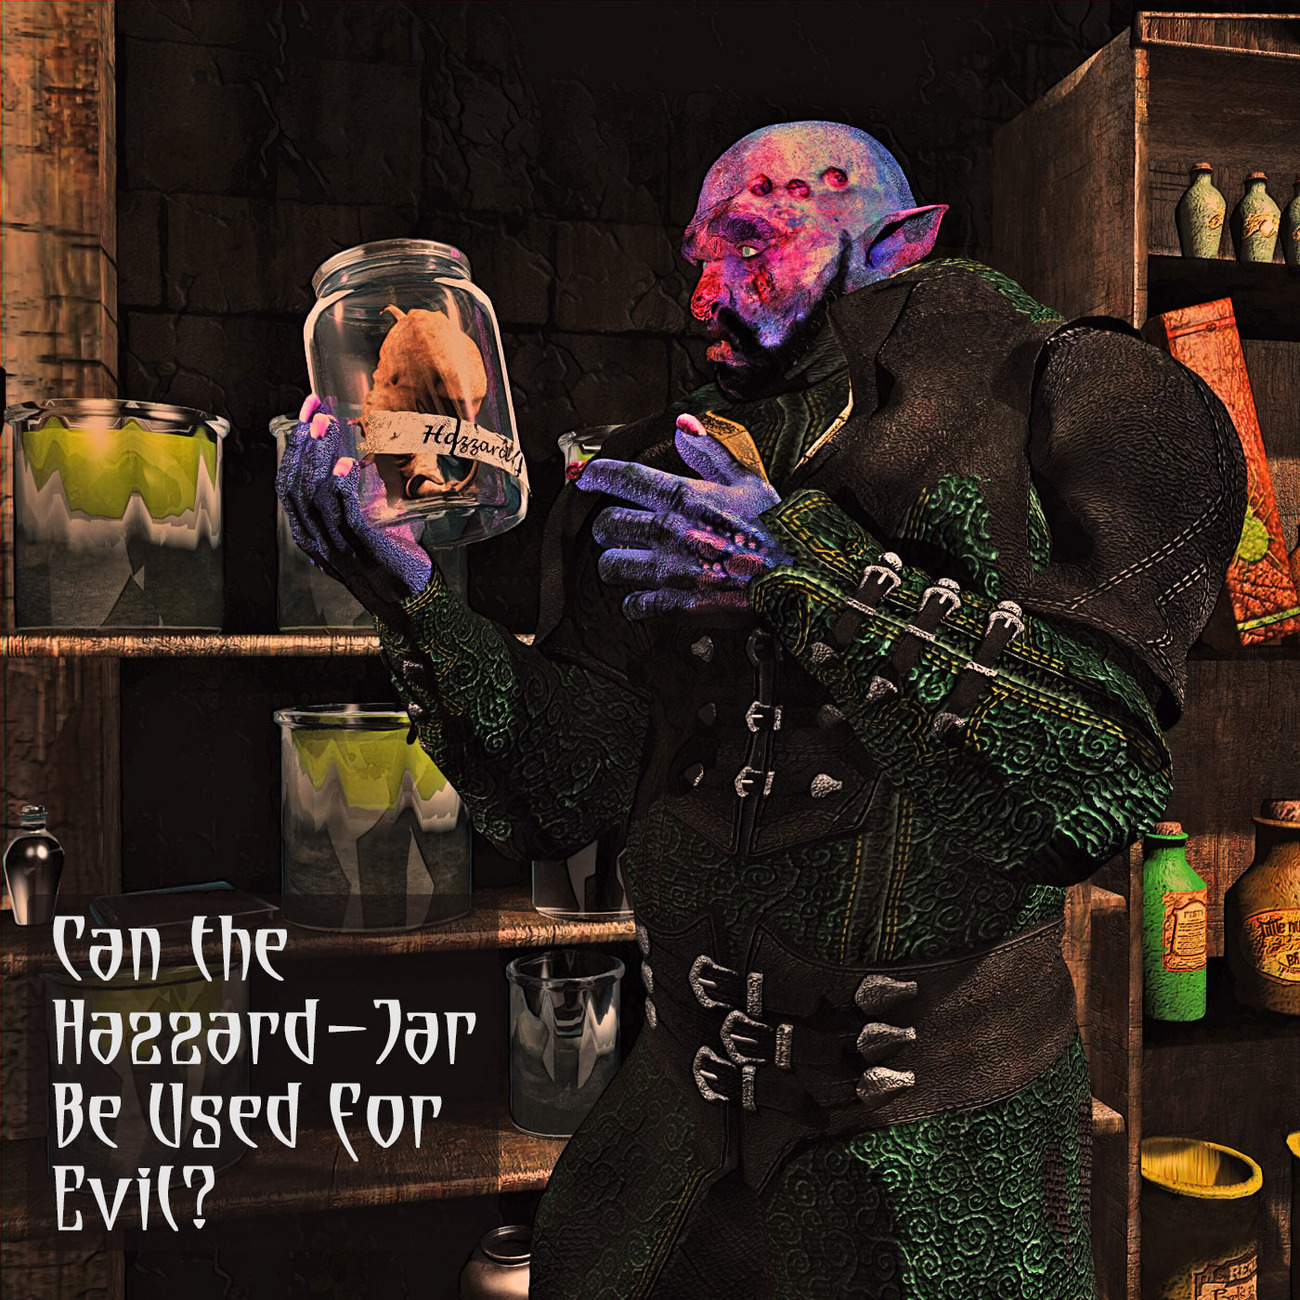 Can the Hazard-Jar Be Used for Evil? by rps53